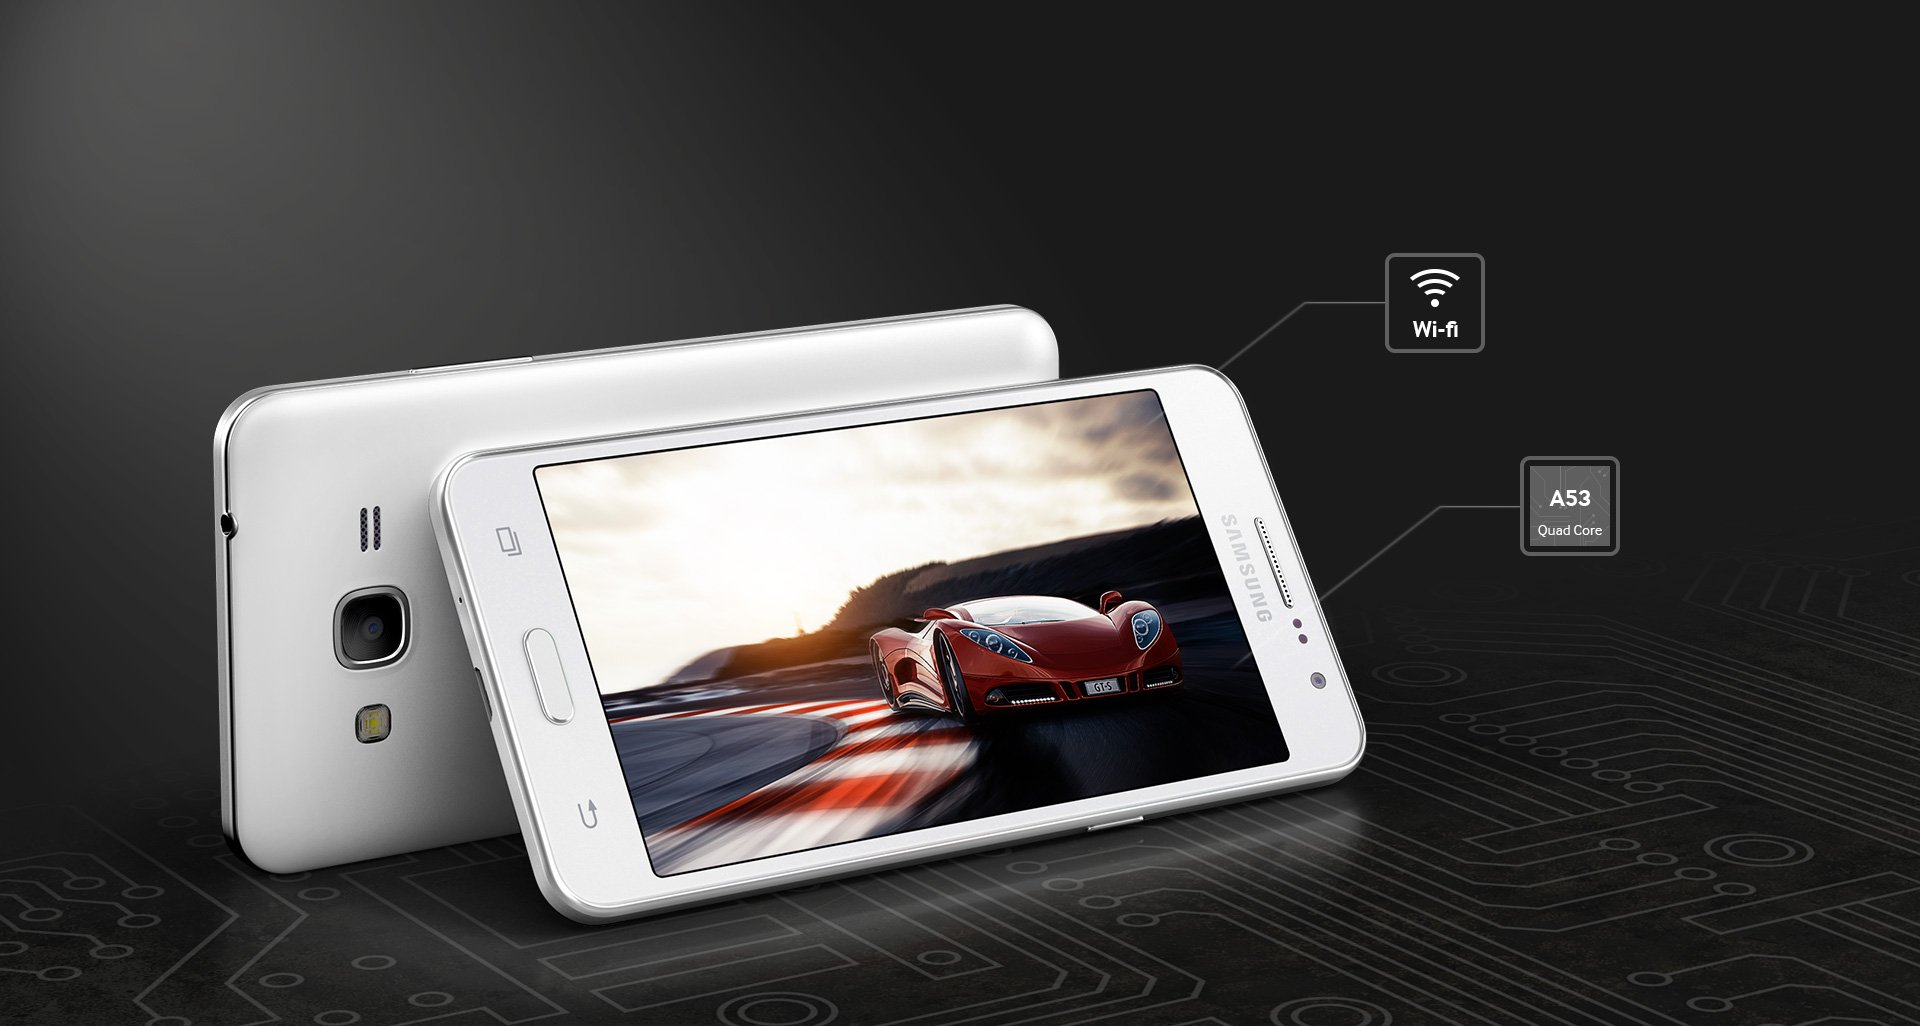 Samsung Galaxy Grand Prime, a 5-megapixel selfie shooter unviled in India for Rs. 15,499